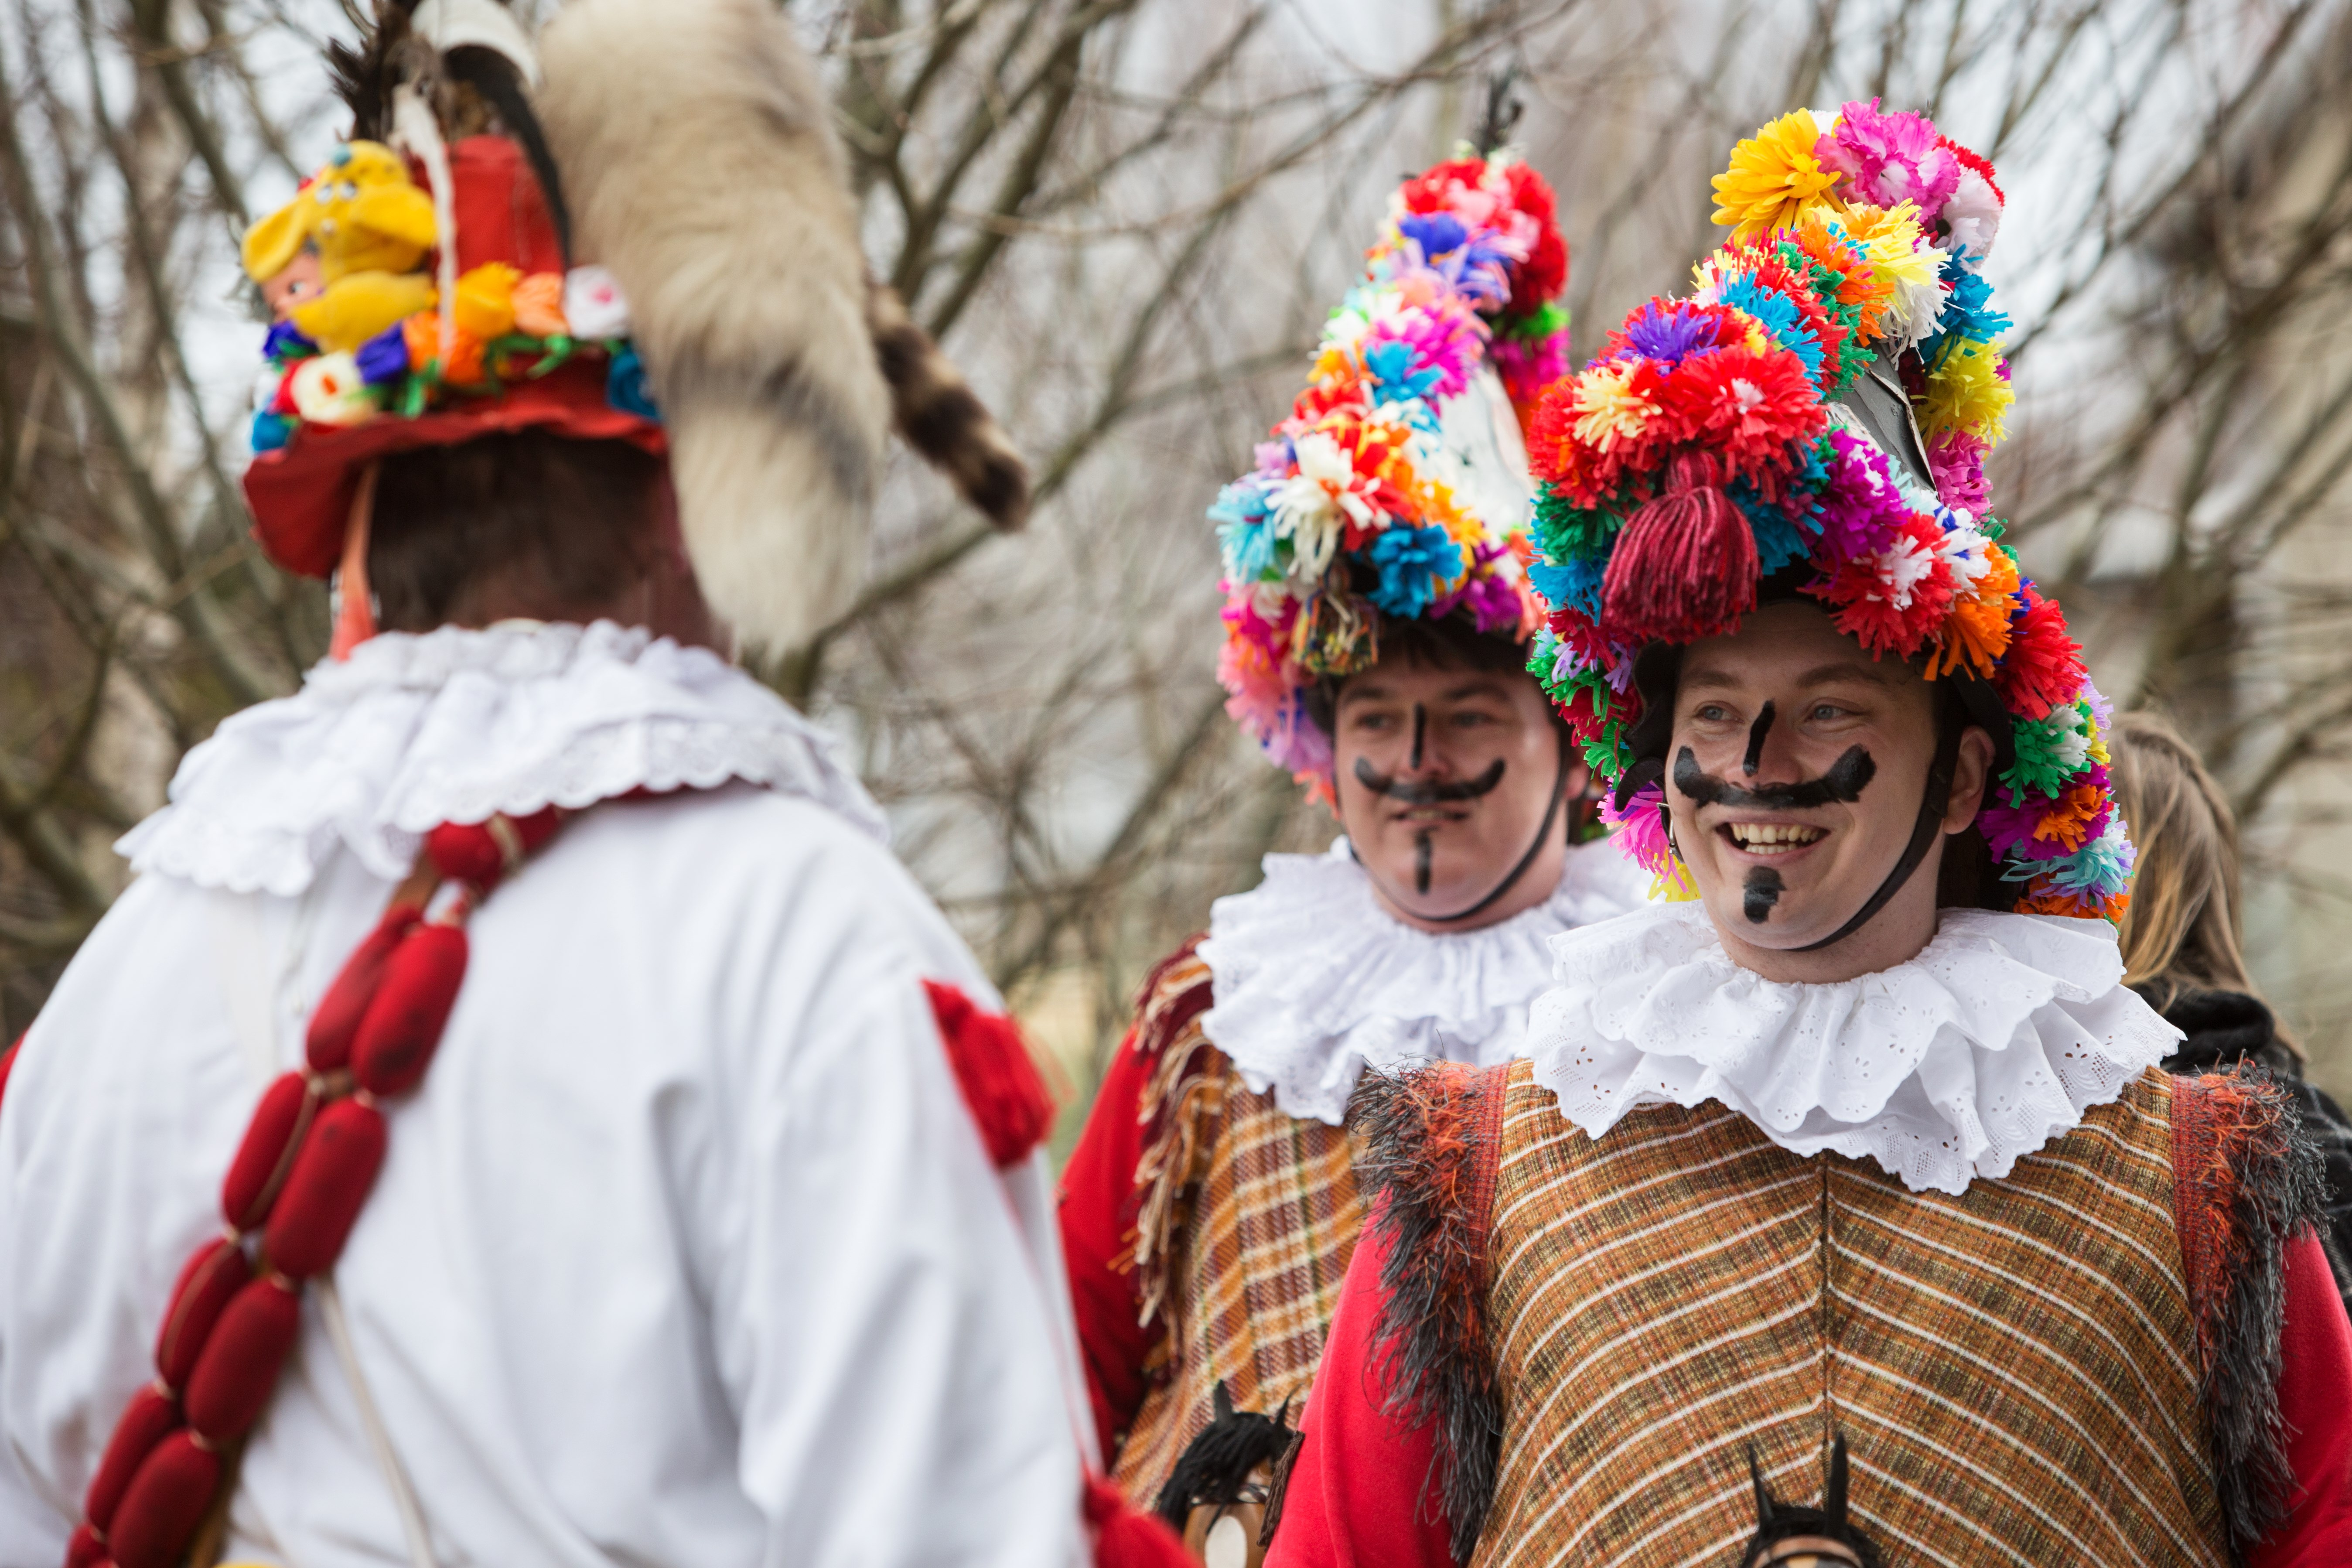 Loosen Your Belt and Put on Your Mask, the Shrovetide Celebrations Are Coming!